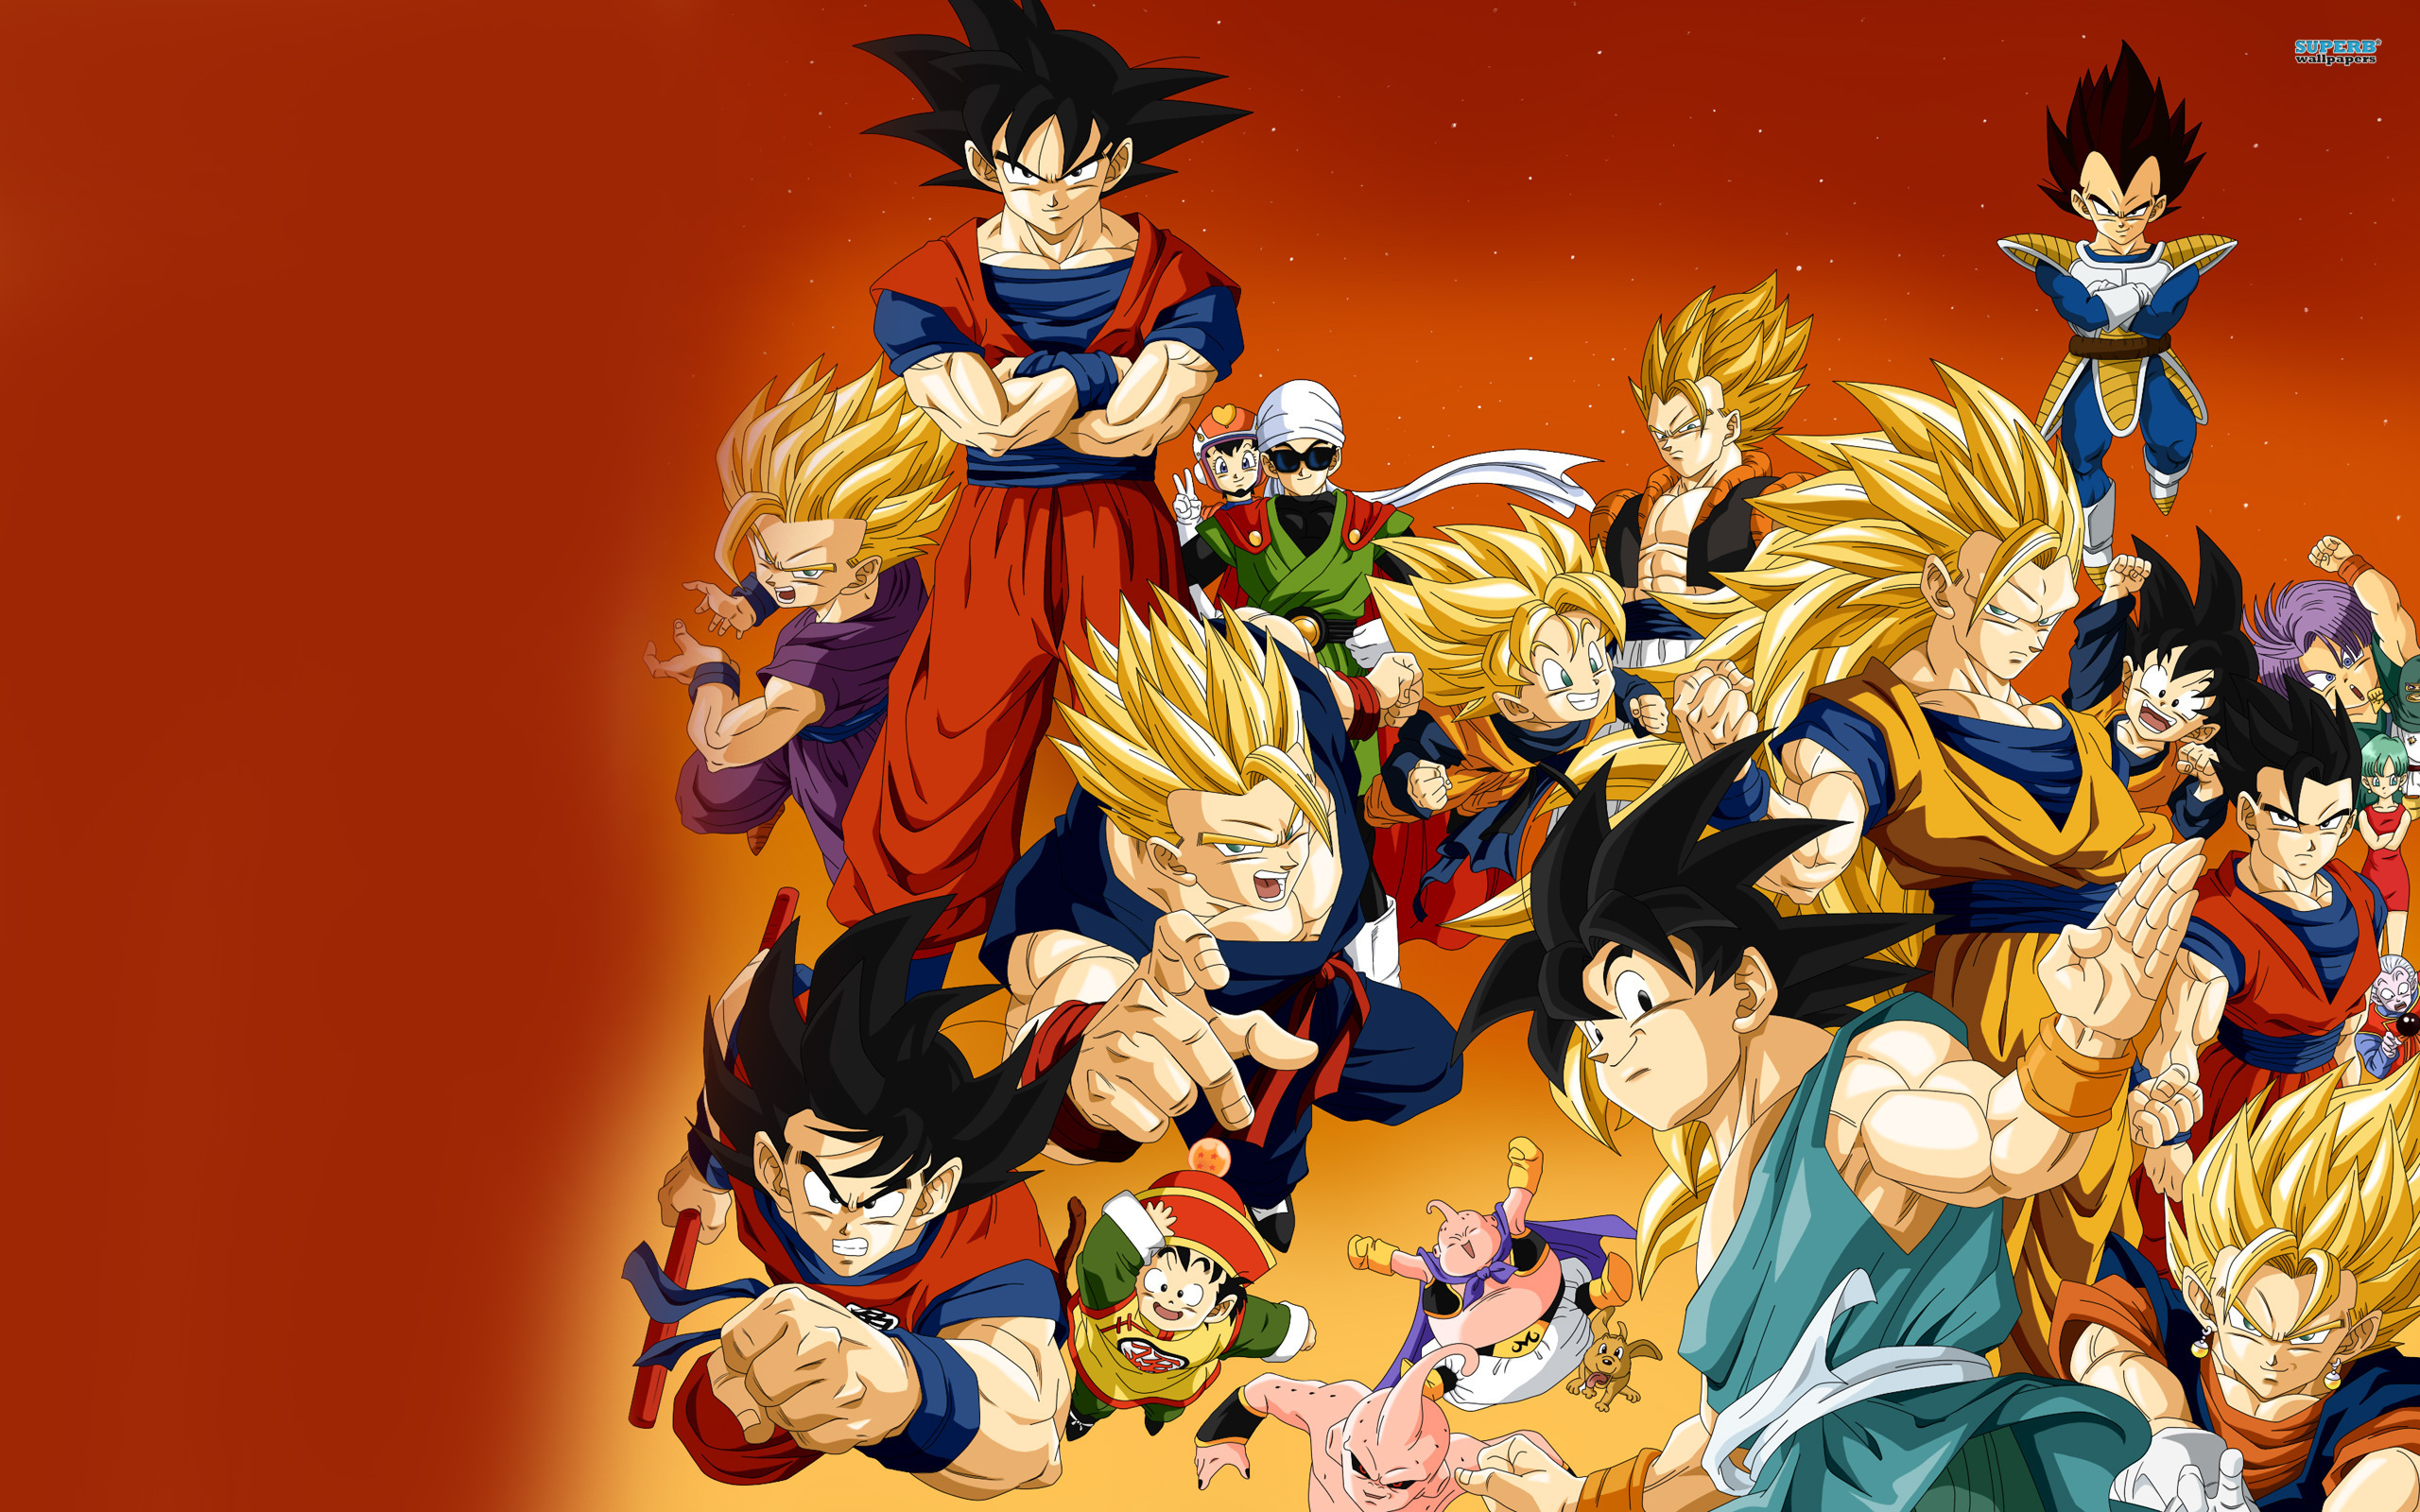 Dragon Ball Z wallpaper 2560x1600 jpg